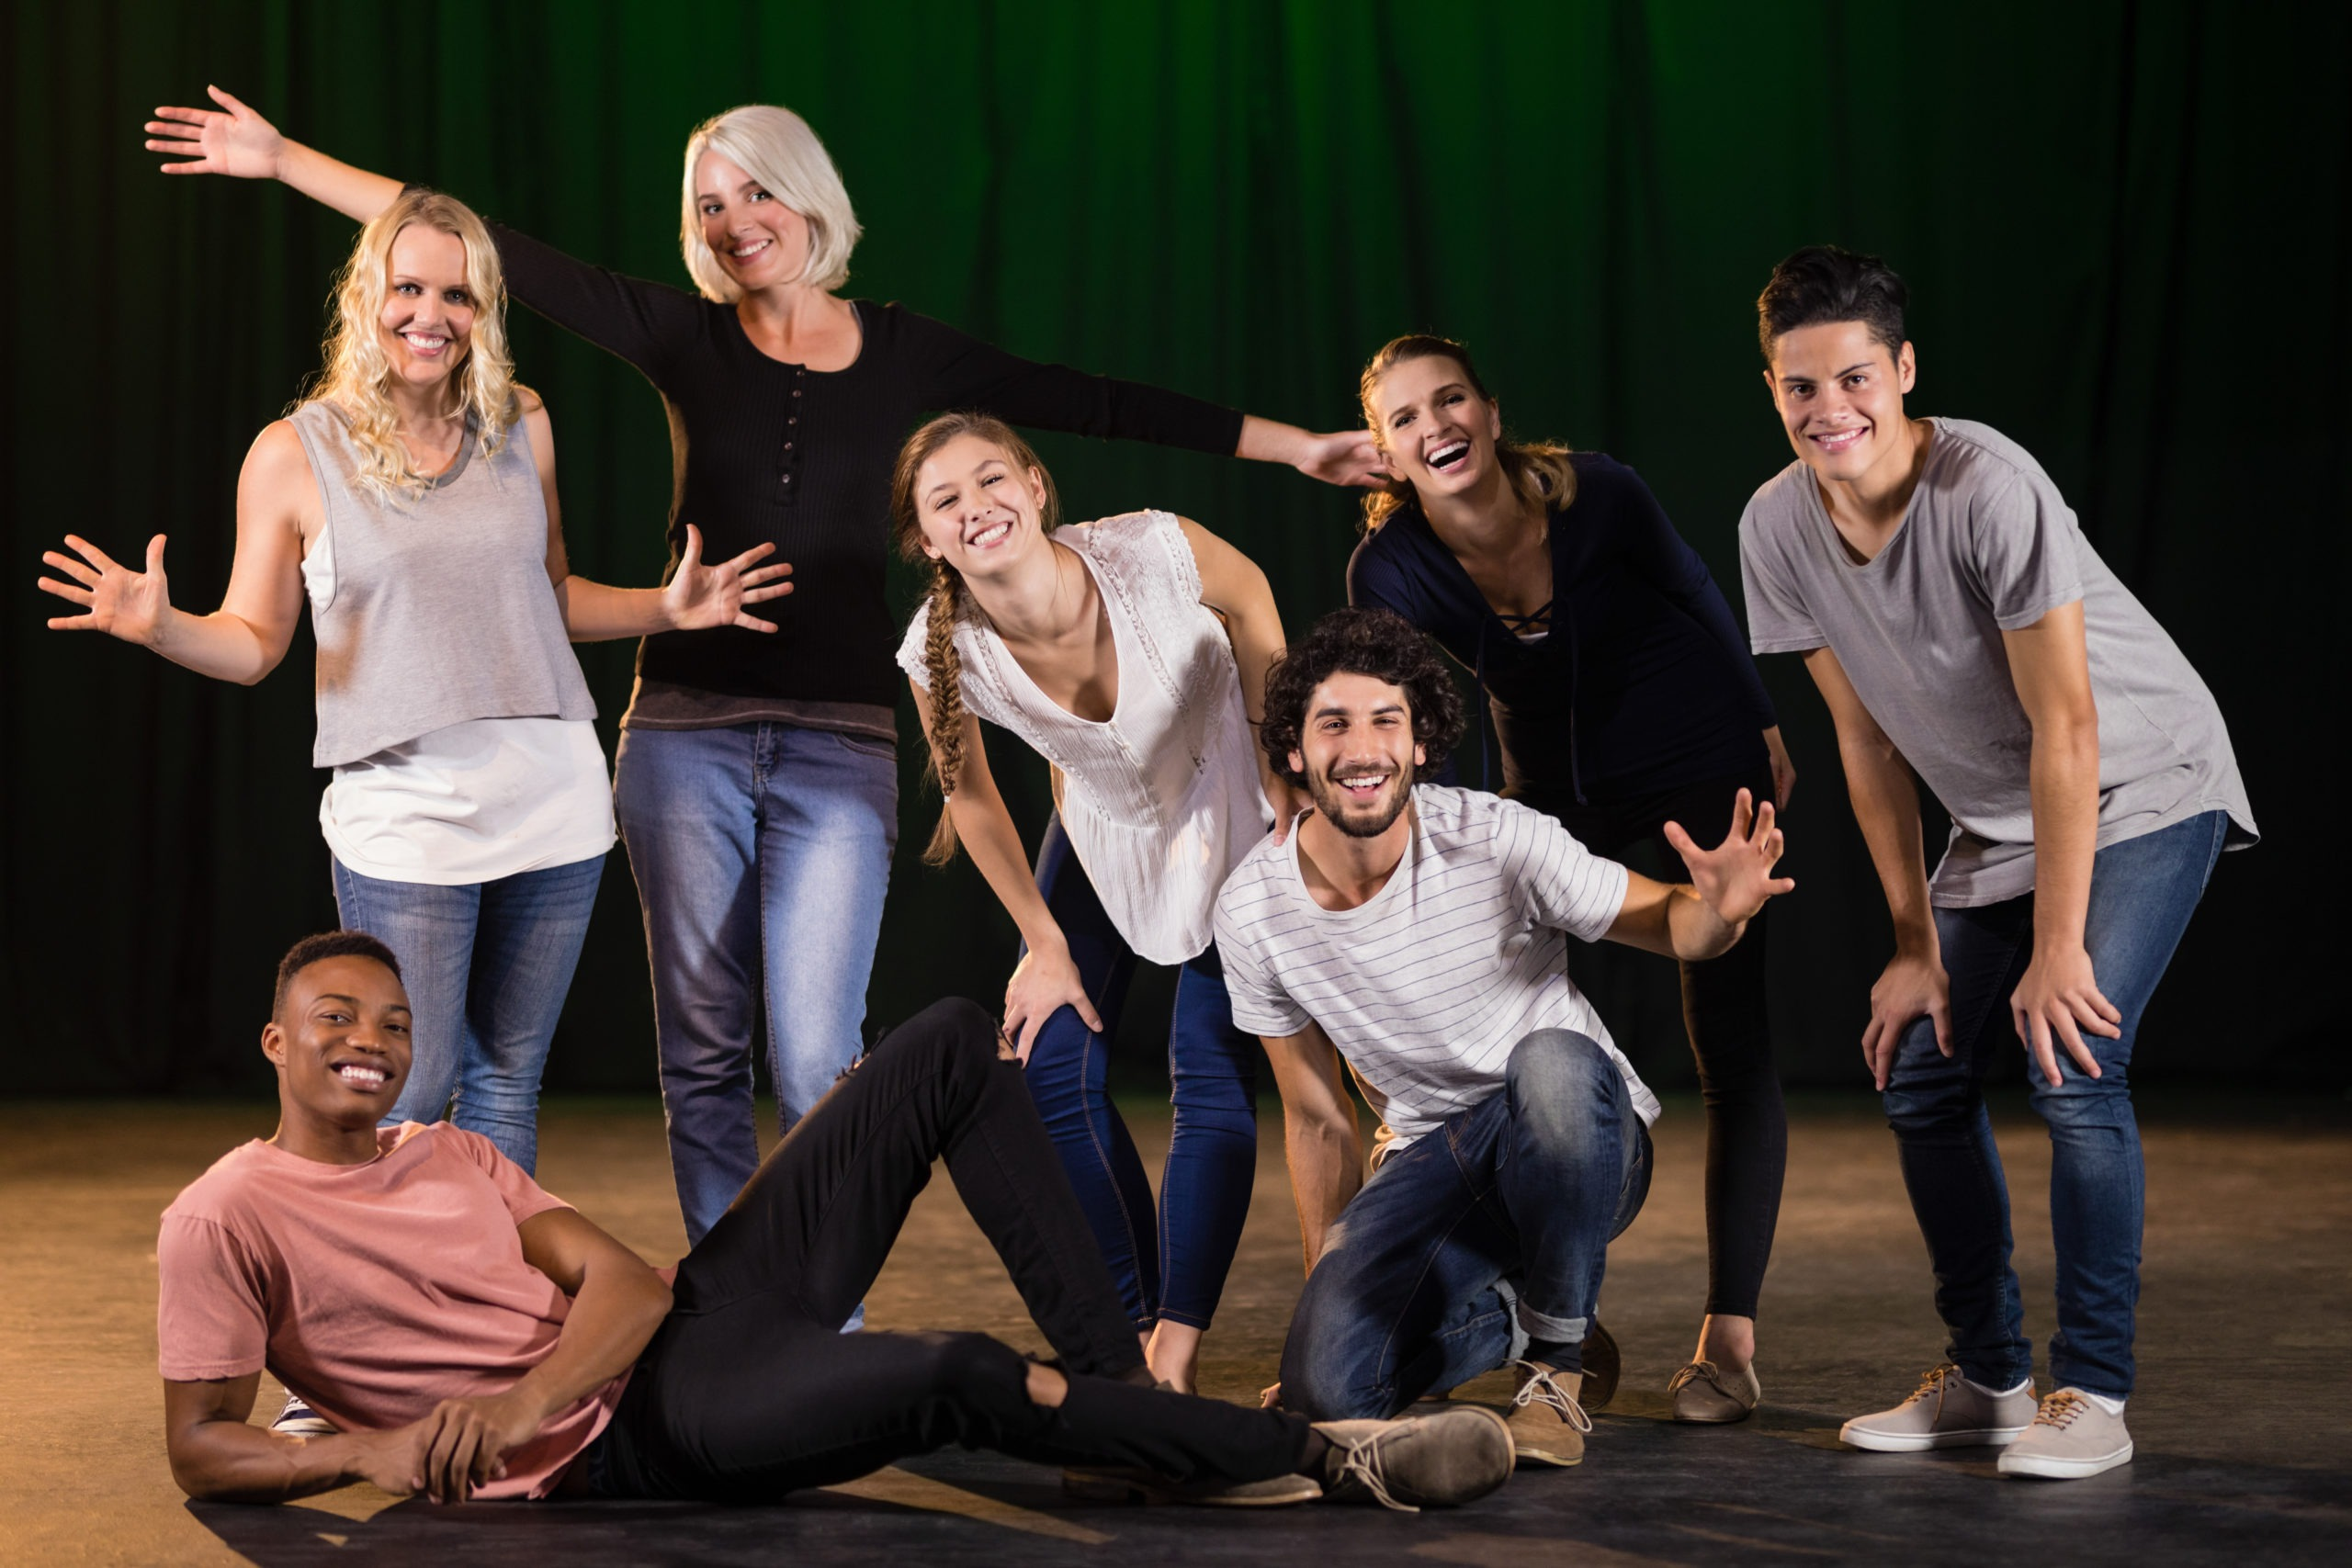 Actors practicing play on stage. A group of people are posing for a picture